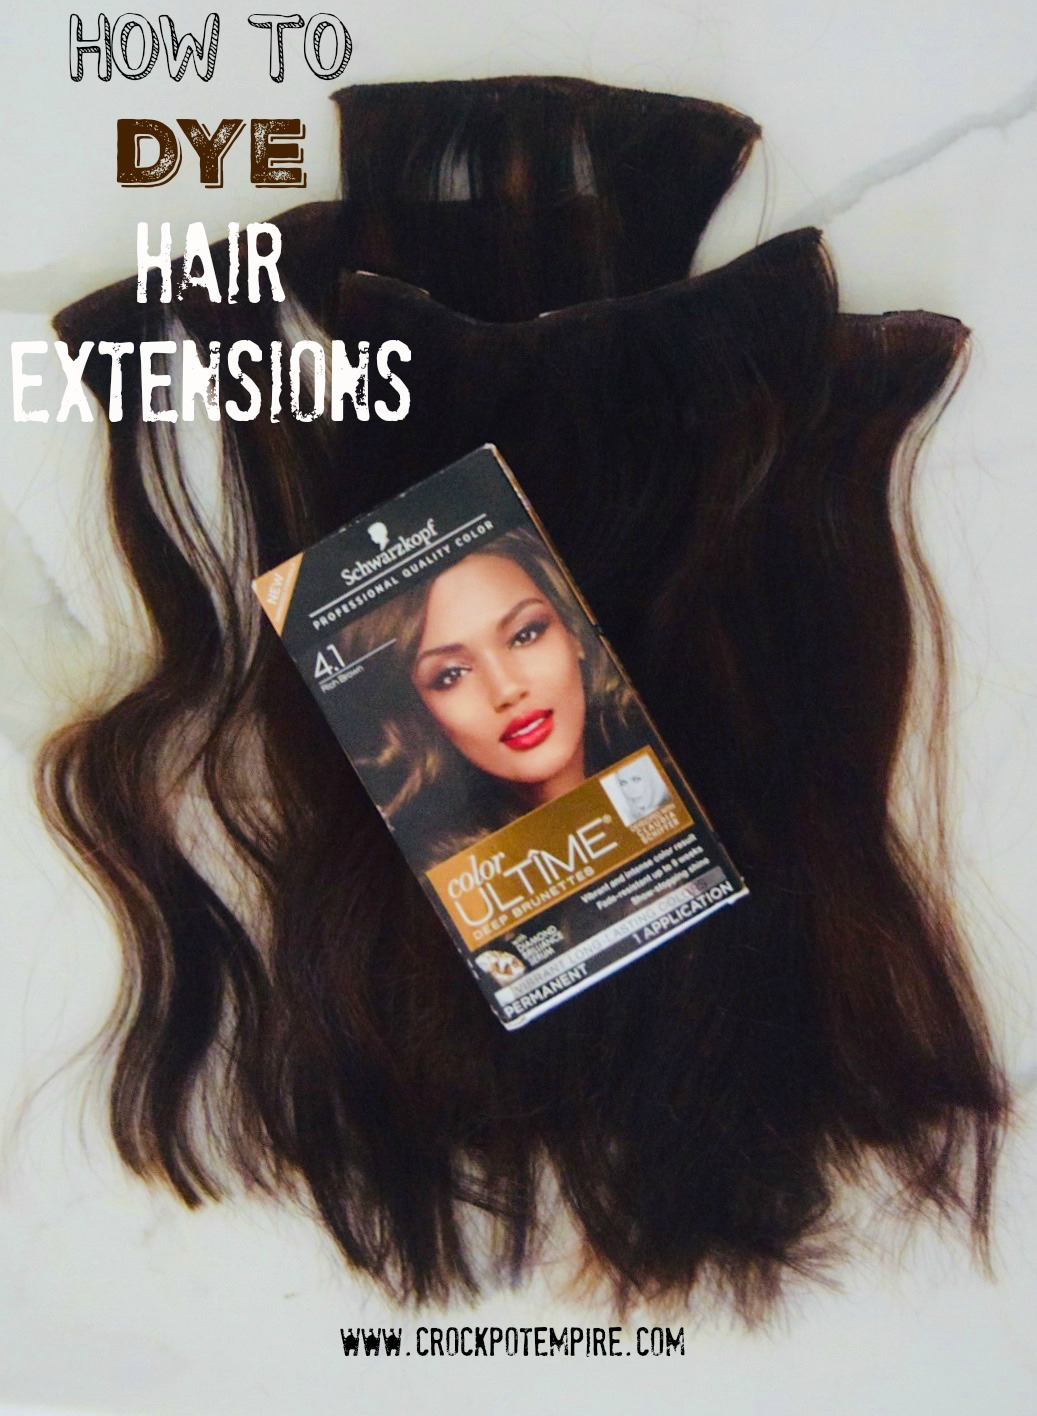 Hair color tips for dyeing your hair at home crockpot empire diy hair tutorial with schwarzkopf color ultime solutioingenieria Images